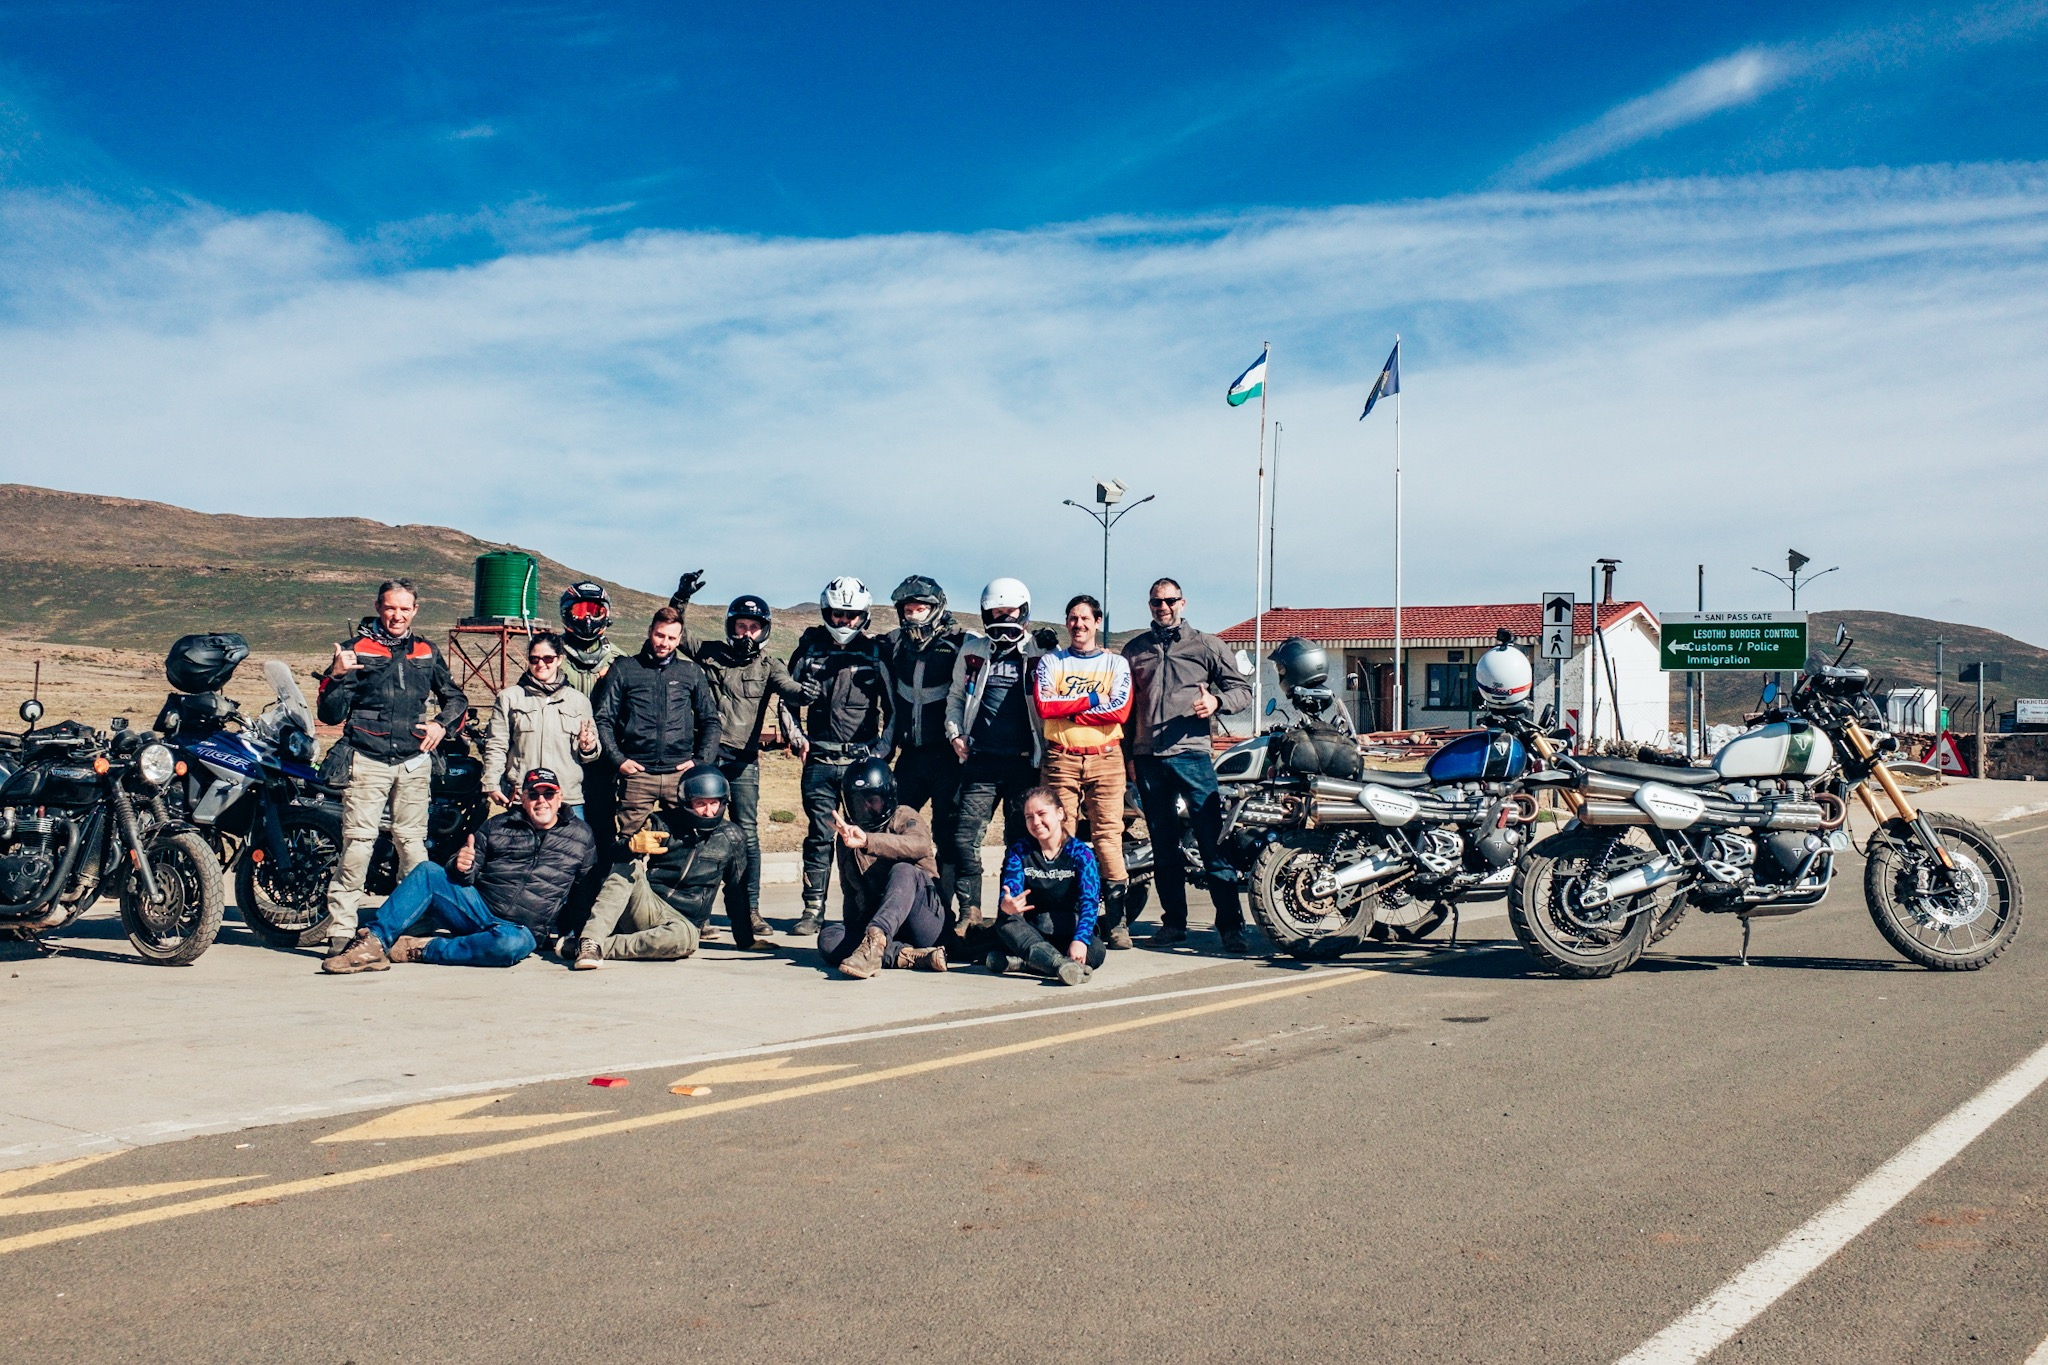 Everyone was thrilled to make it to the top of Sani Pass. Even the new Triumph 1200 Scramblers.